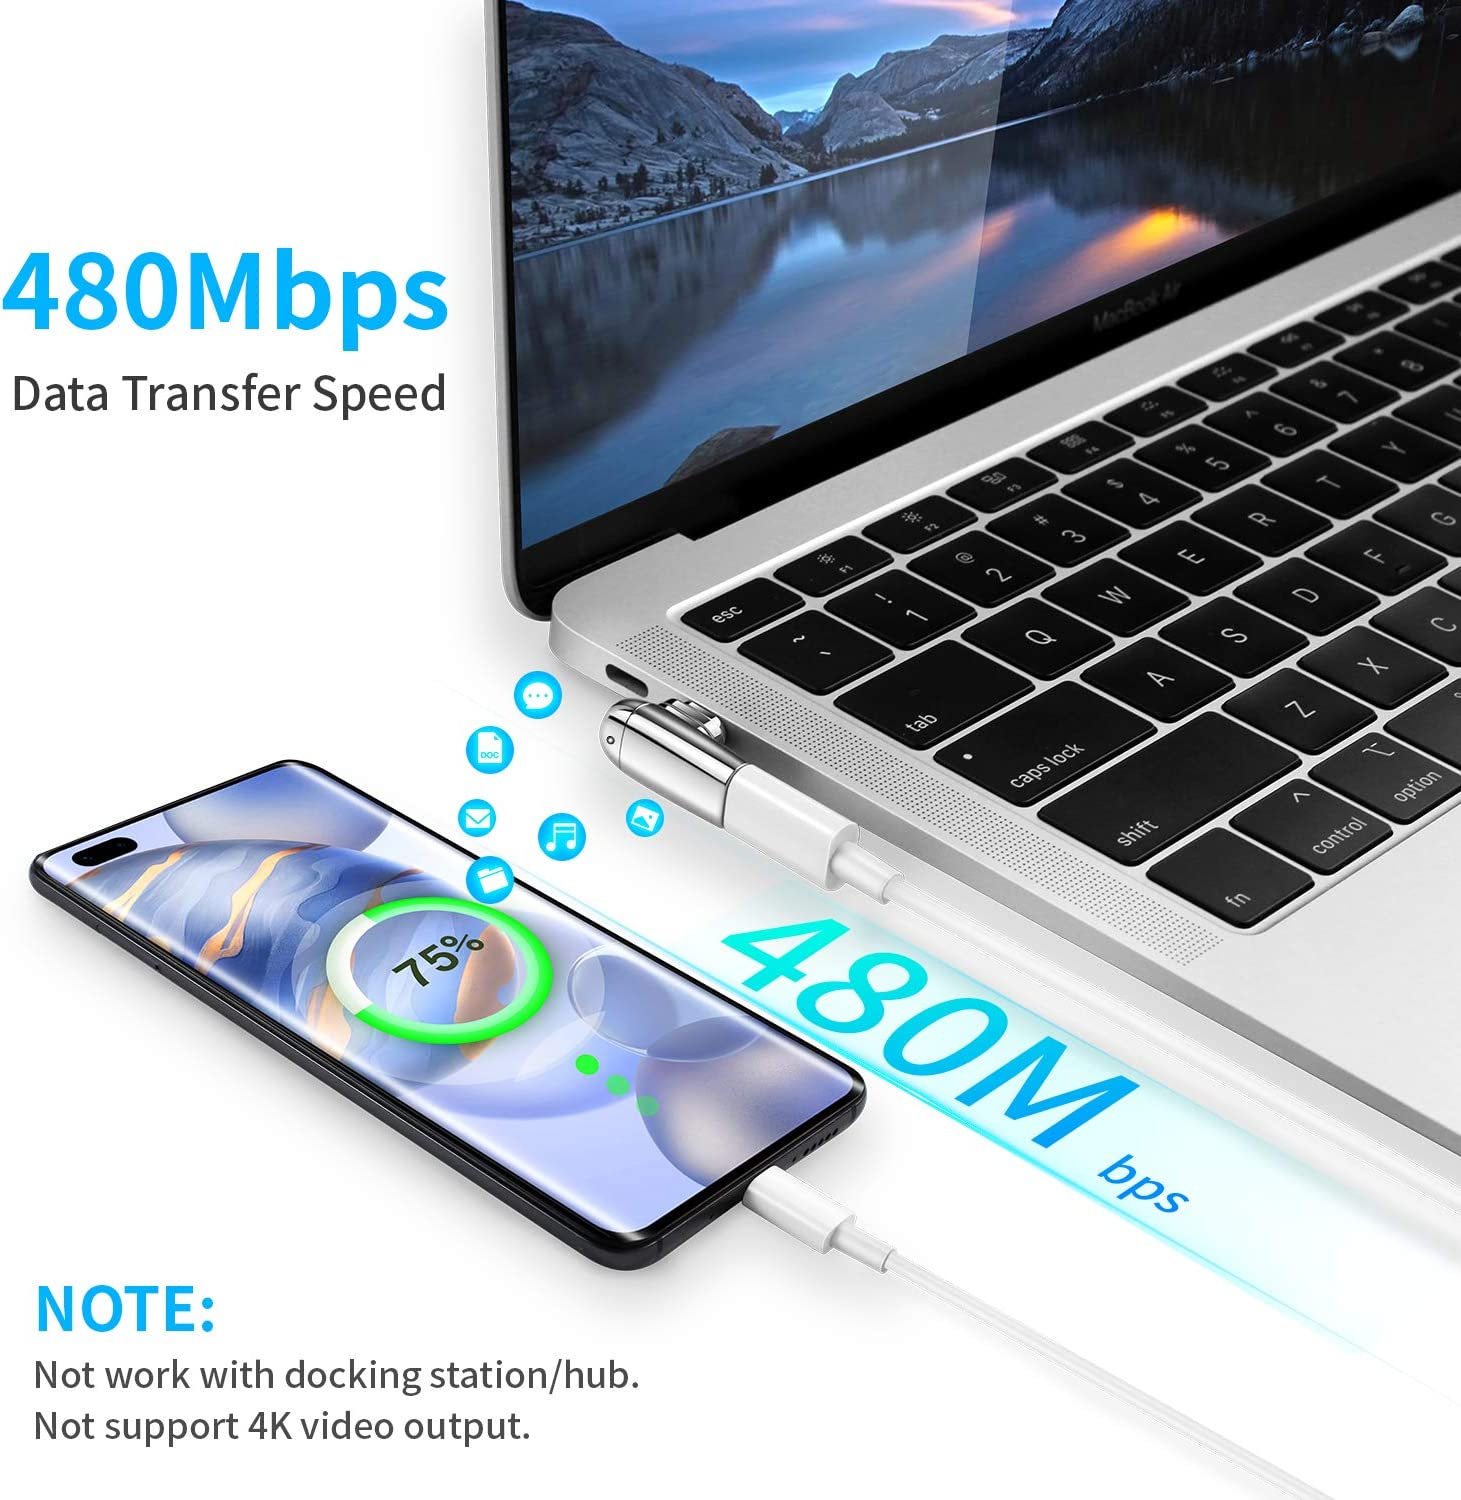 USB C Magnetic Adapter iSkey 9 Pins Magnetic USB C Adapter Support USB PD 100W Quick Charge and 480Mb//s Data Transfer Compatible with MacBook Pro//Air 2019 iPad Pro and More USB Type C Devices